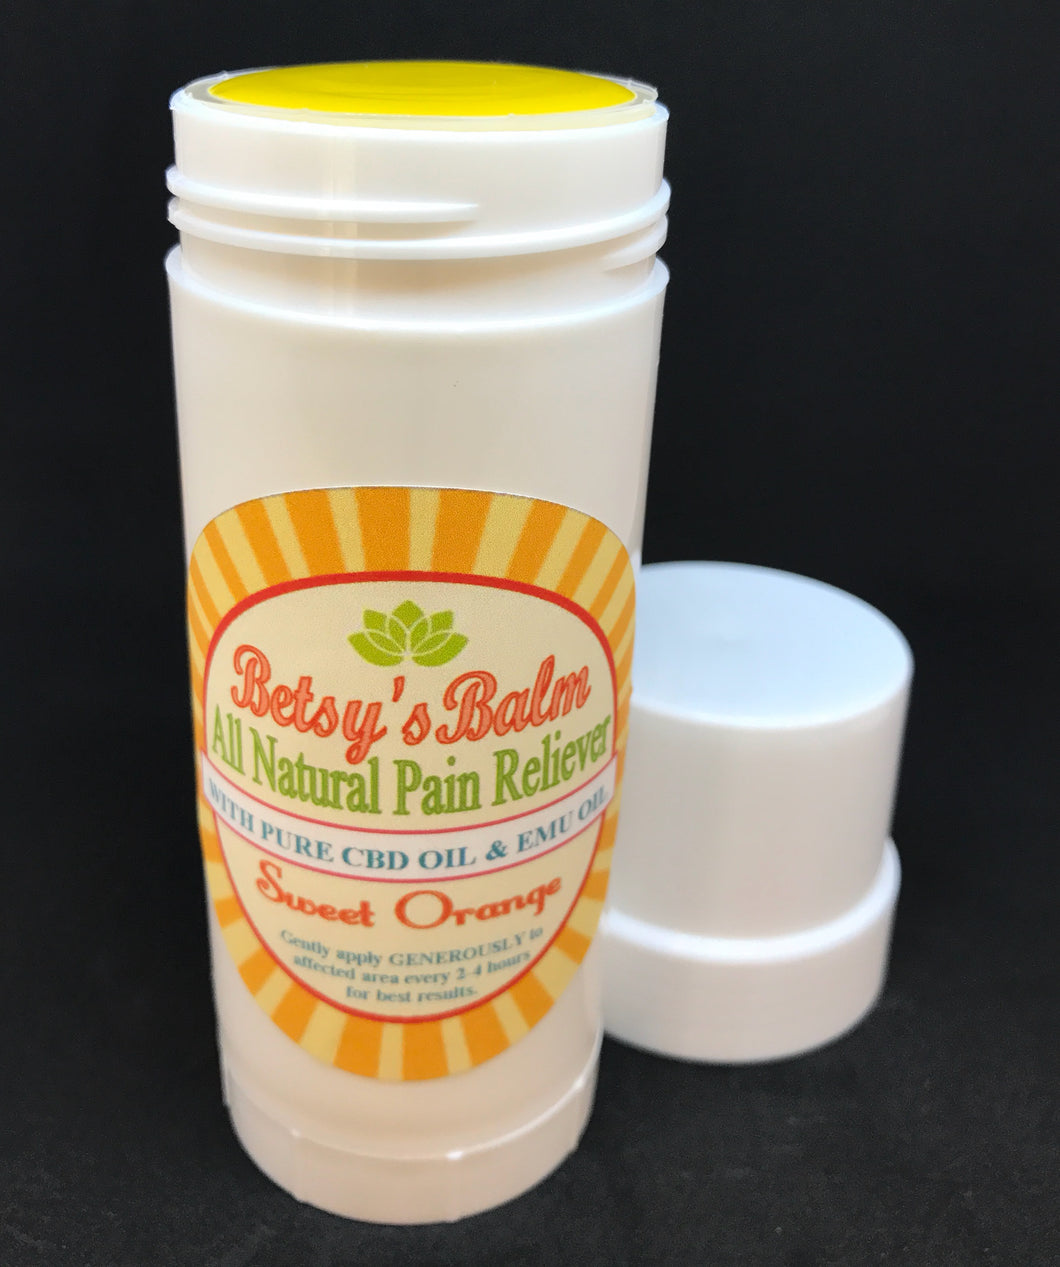 Betsy's Balm All Natural Pain Reliever with CBD Oil and Emu Oil Stick